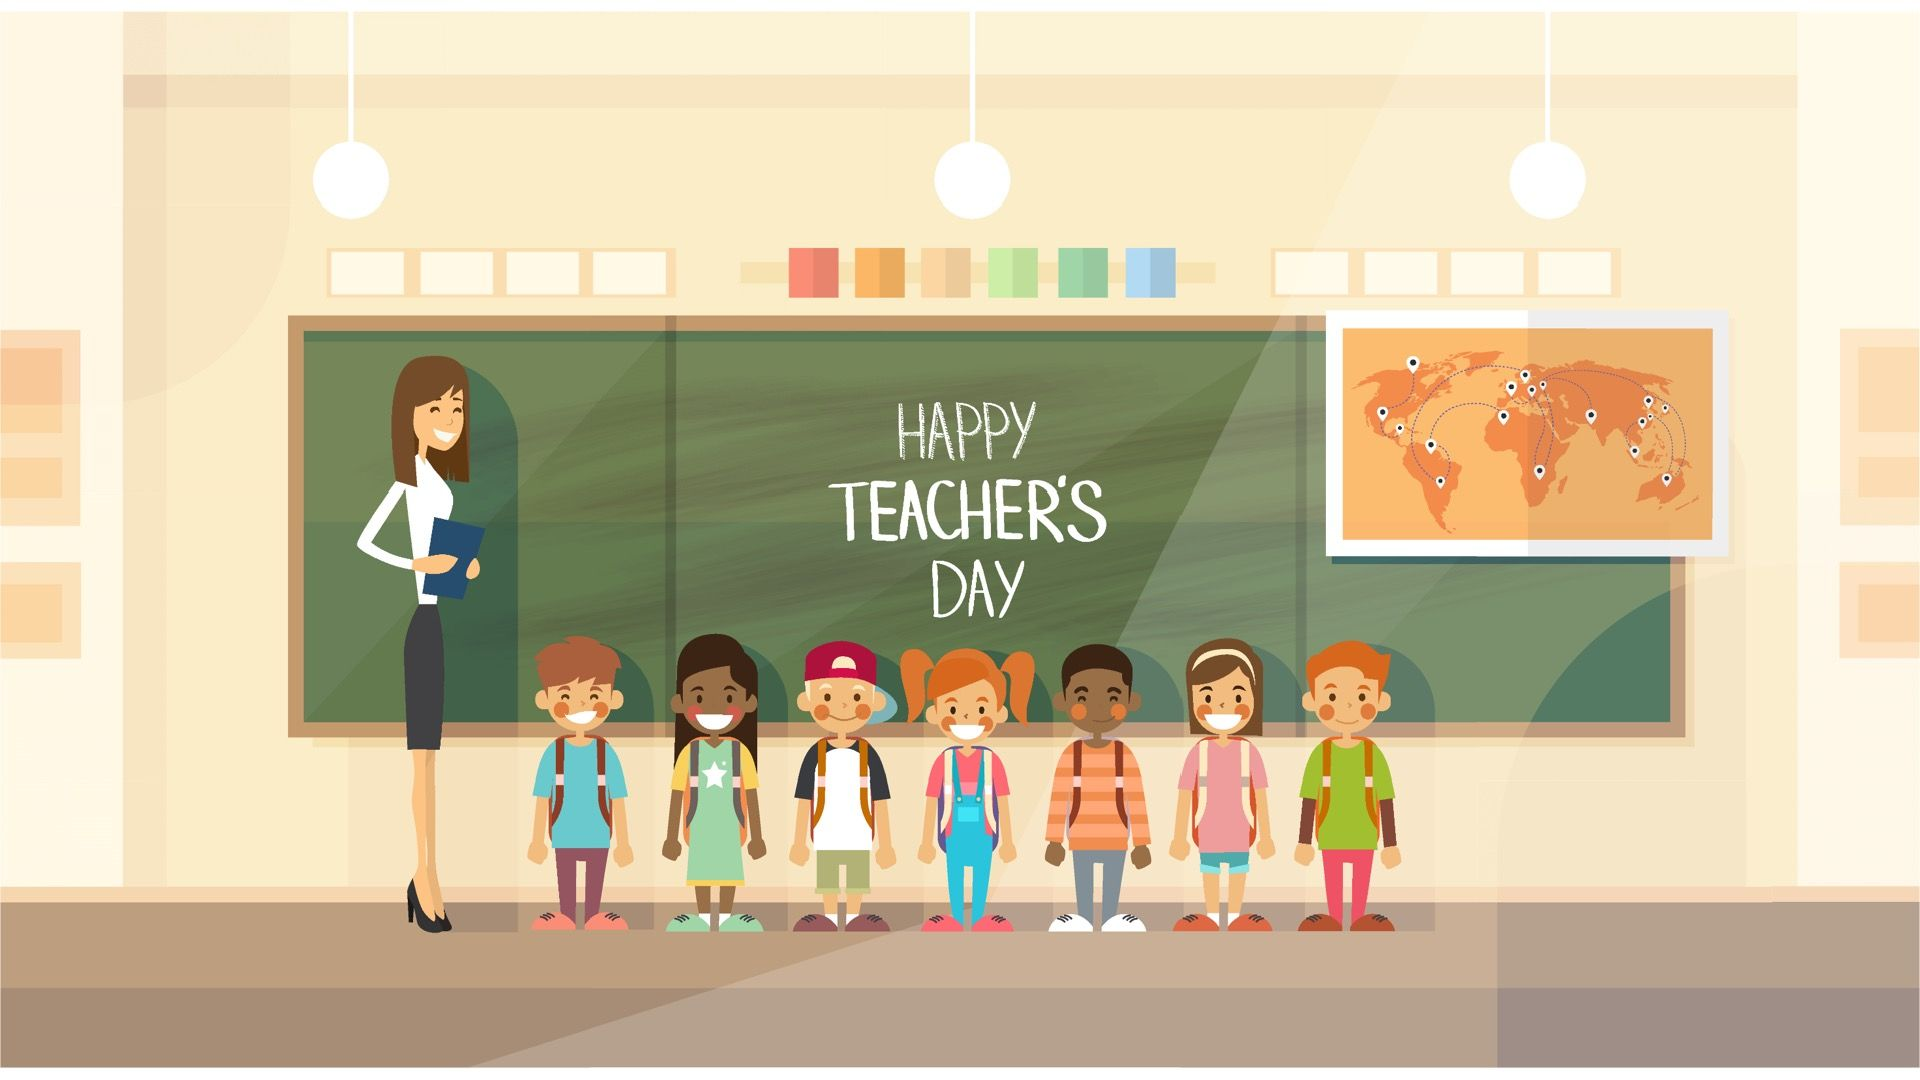 Trending Multipurpose Powerpoint Template In 2020 Happy Teachers Day Holiday Class Teachers Day